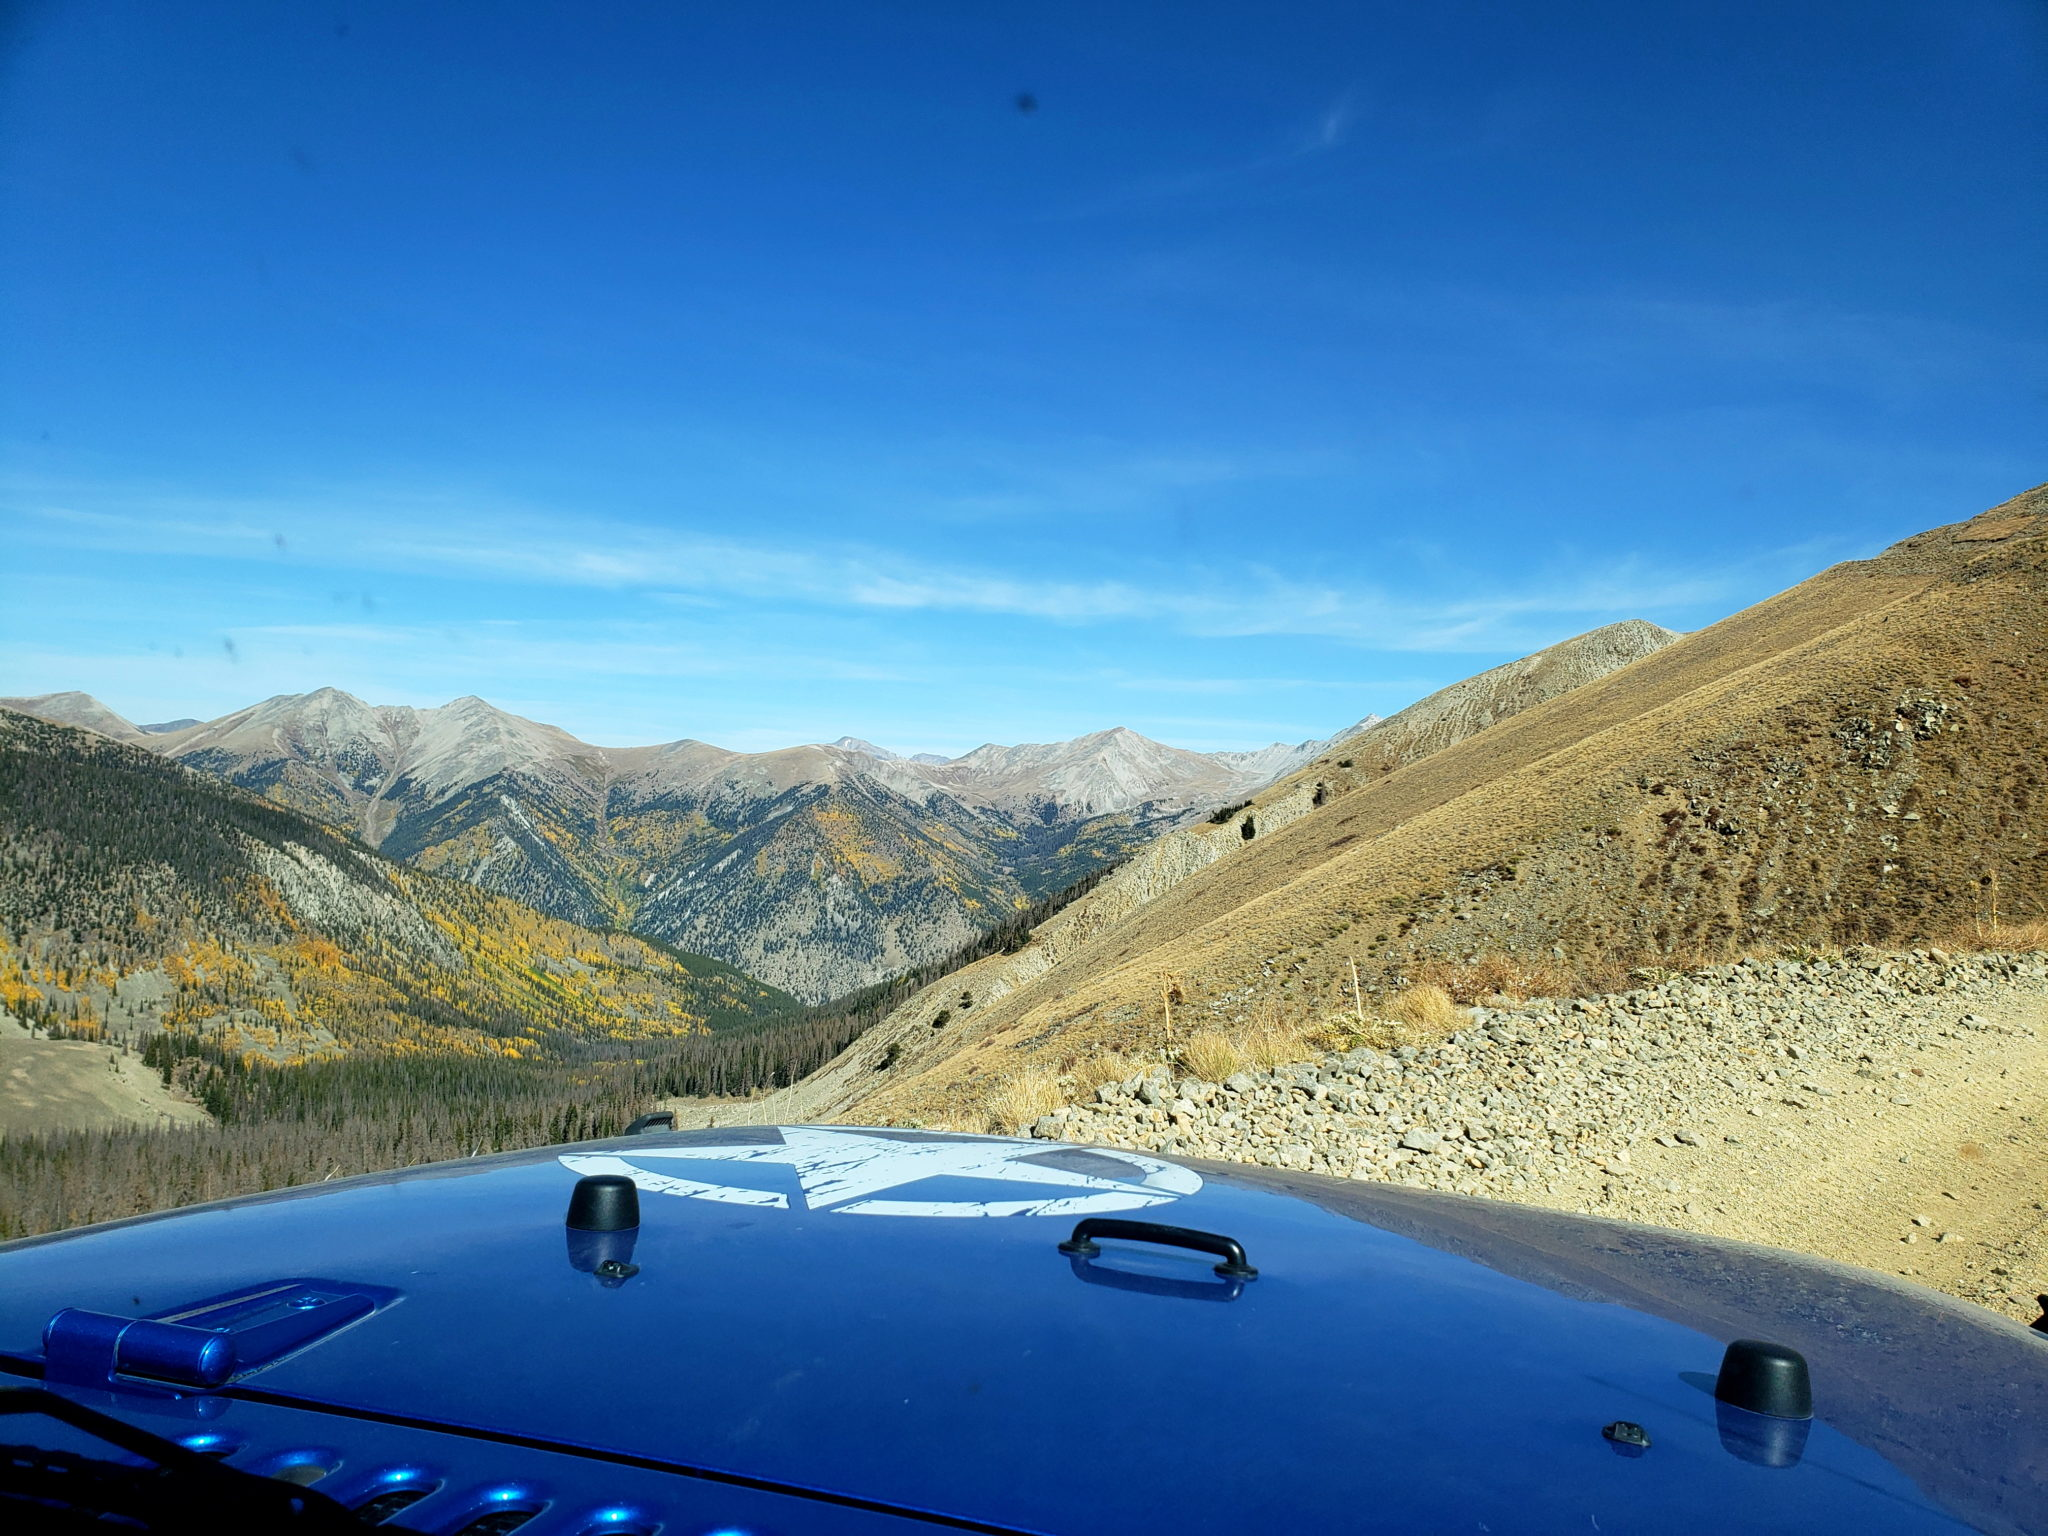 The road climbs quickly once above treeline